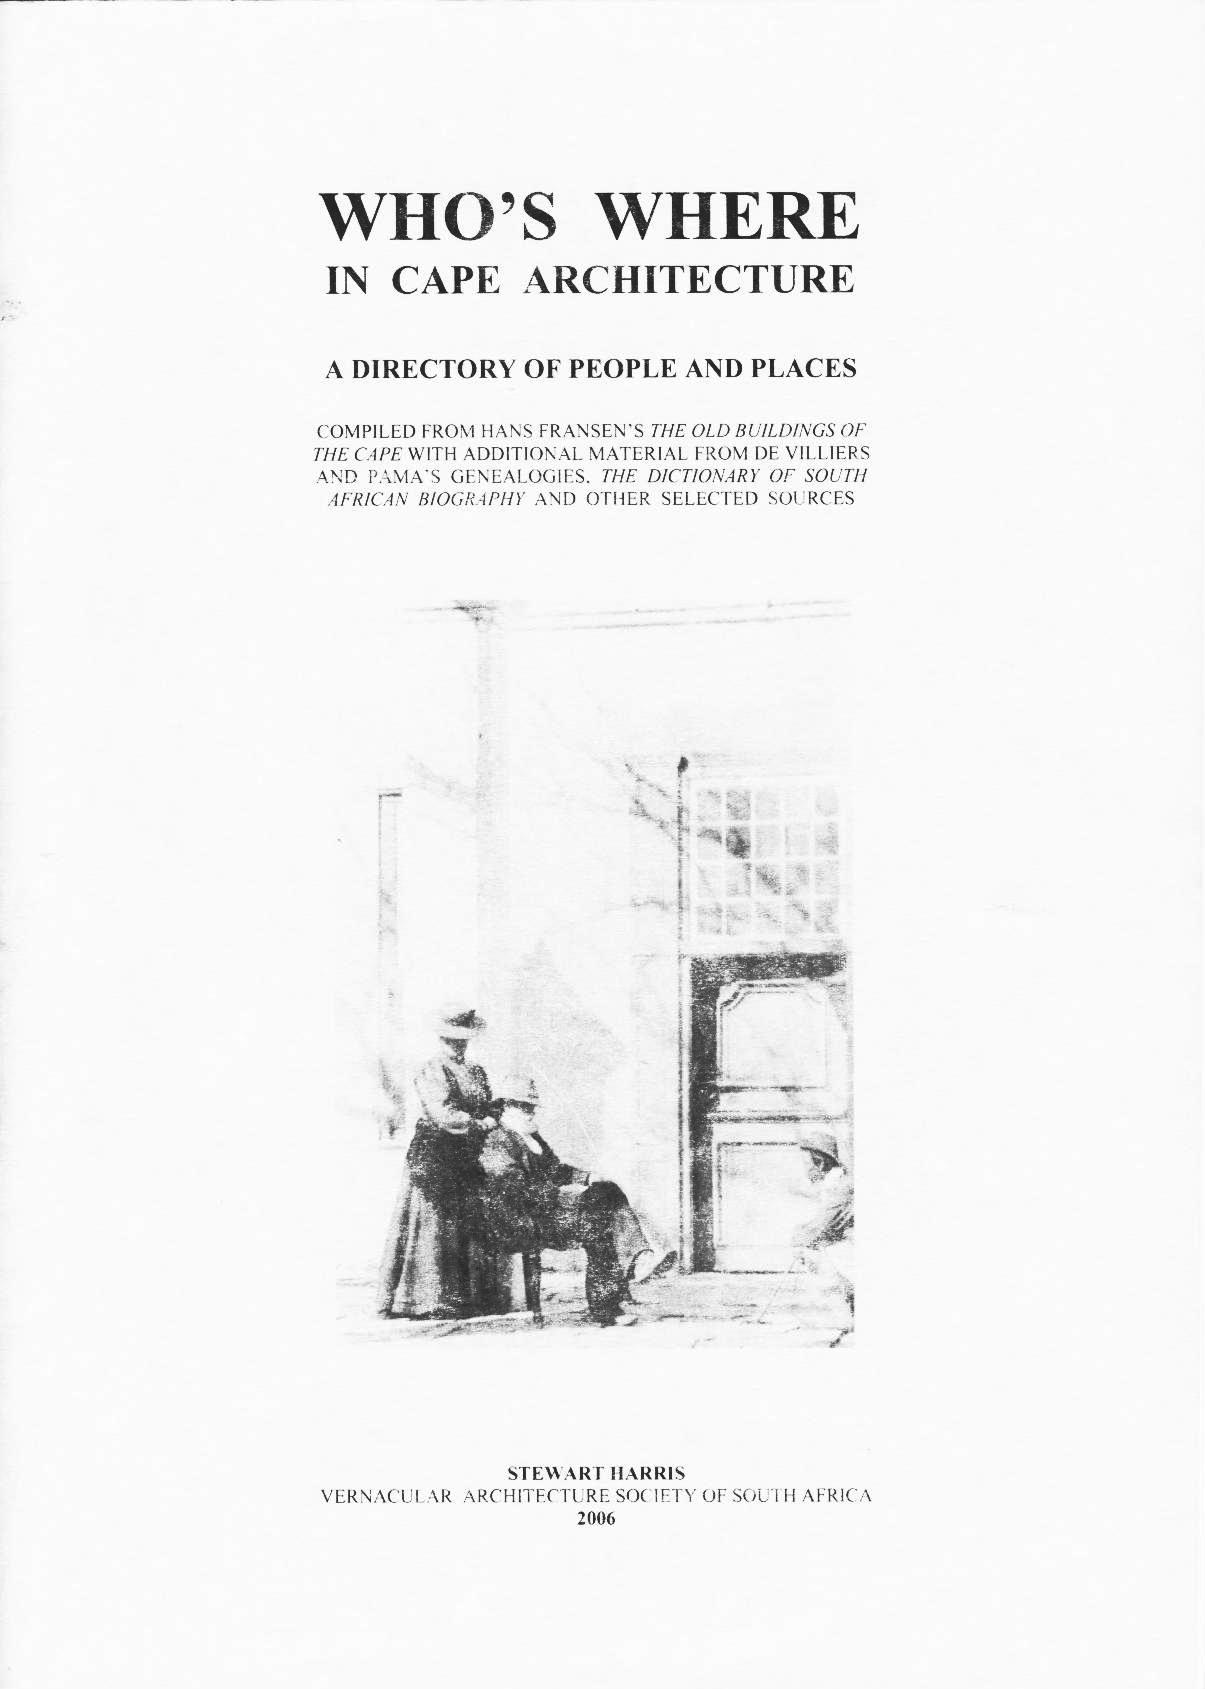 Who's Where in Cape Architecture